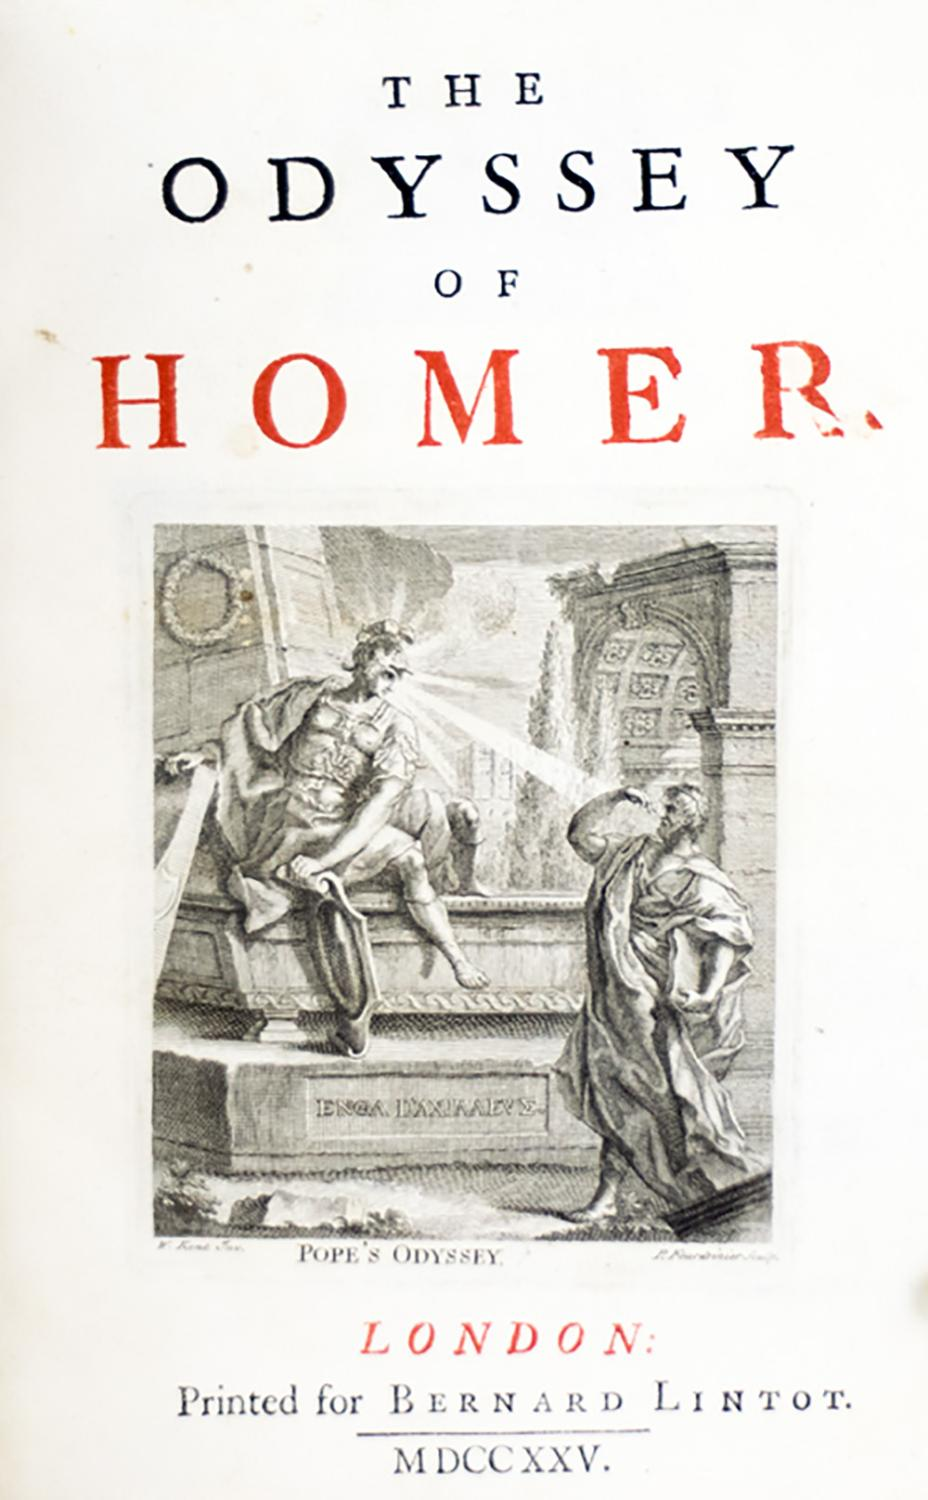 a comparison of the odyssey and the iliad by homer The iliad by homer, translated from the greek by peter green  ninety-one, his  iliad is out, and his odyssey on the way: an epic coda to an epic career  the  last clause is strictly speaking irrelevant to the comparison, but.